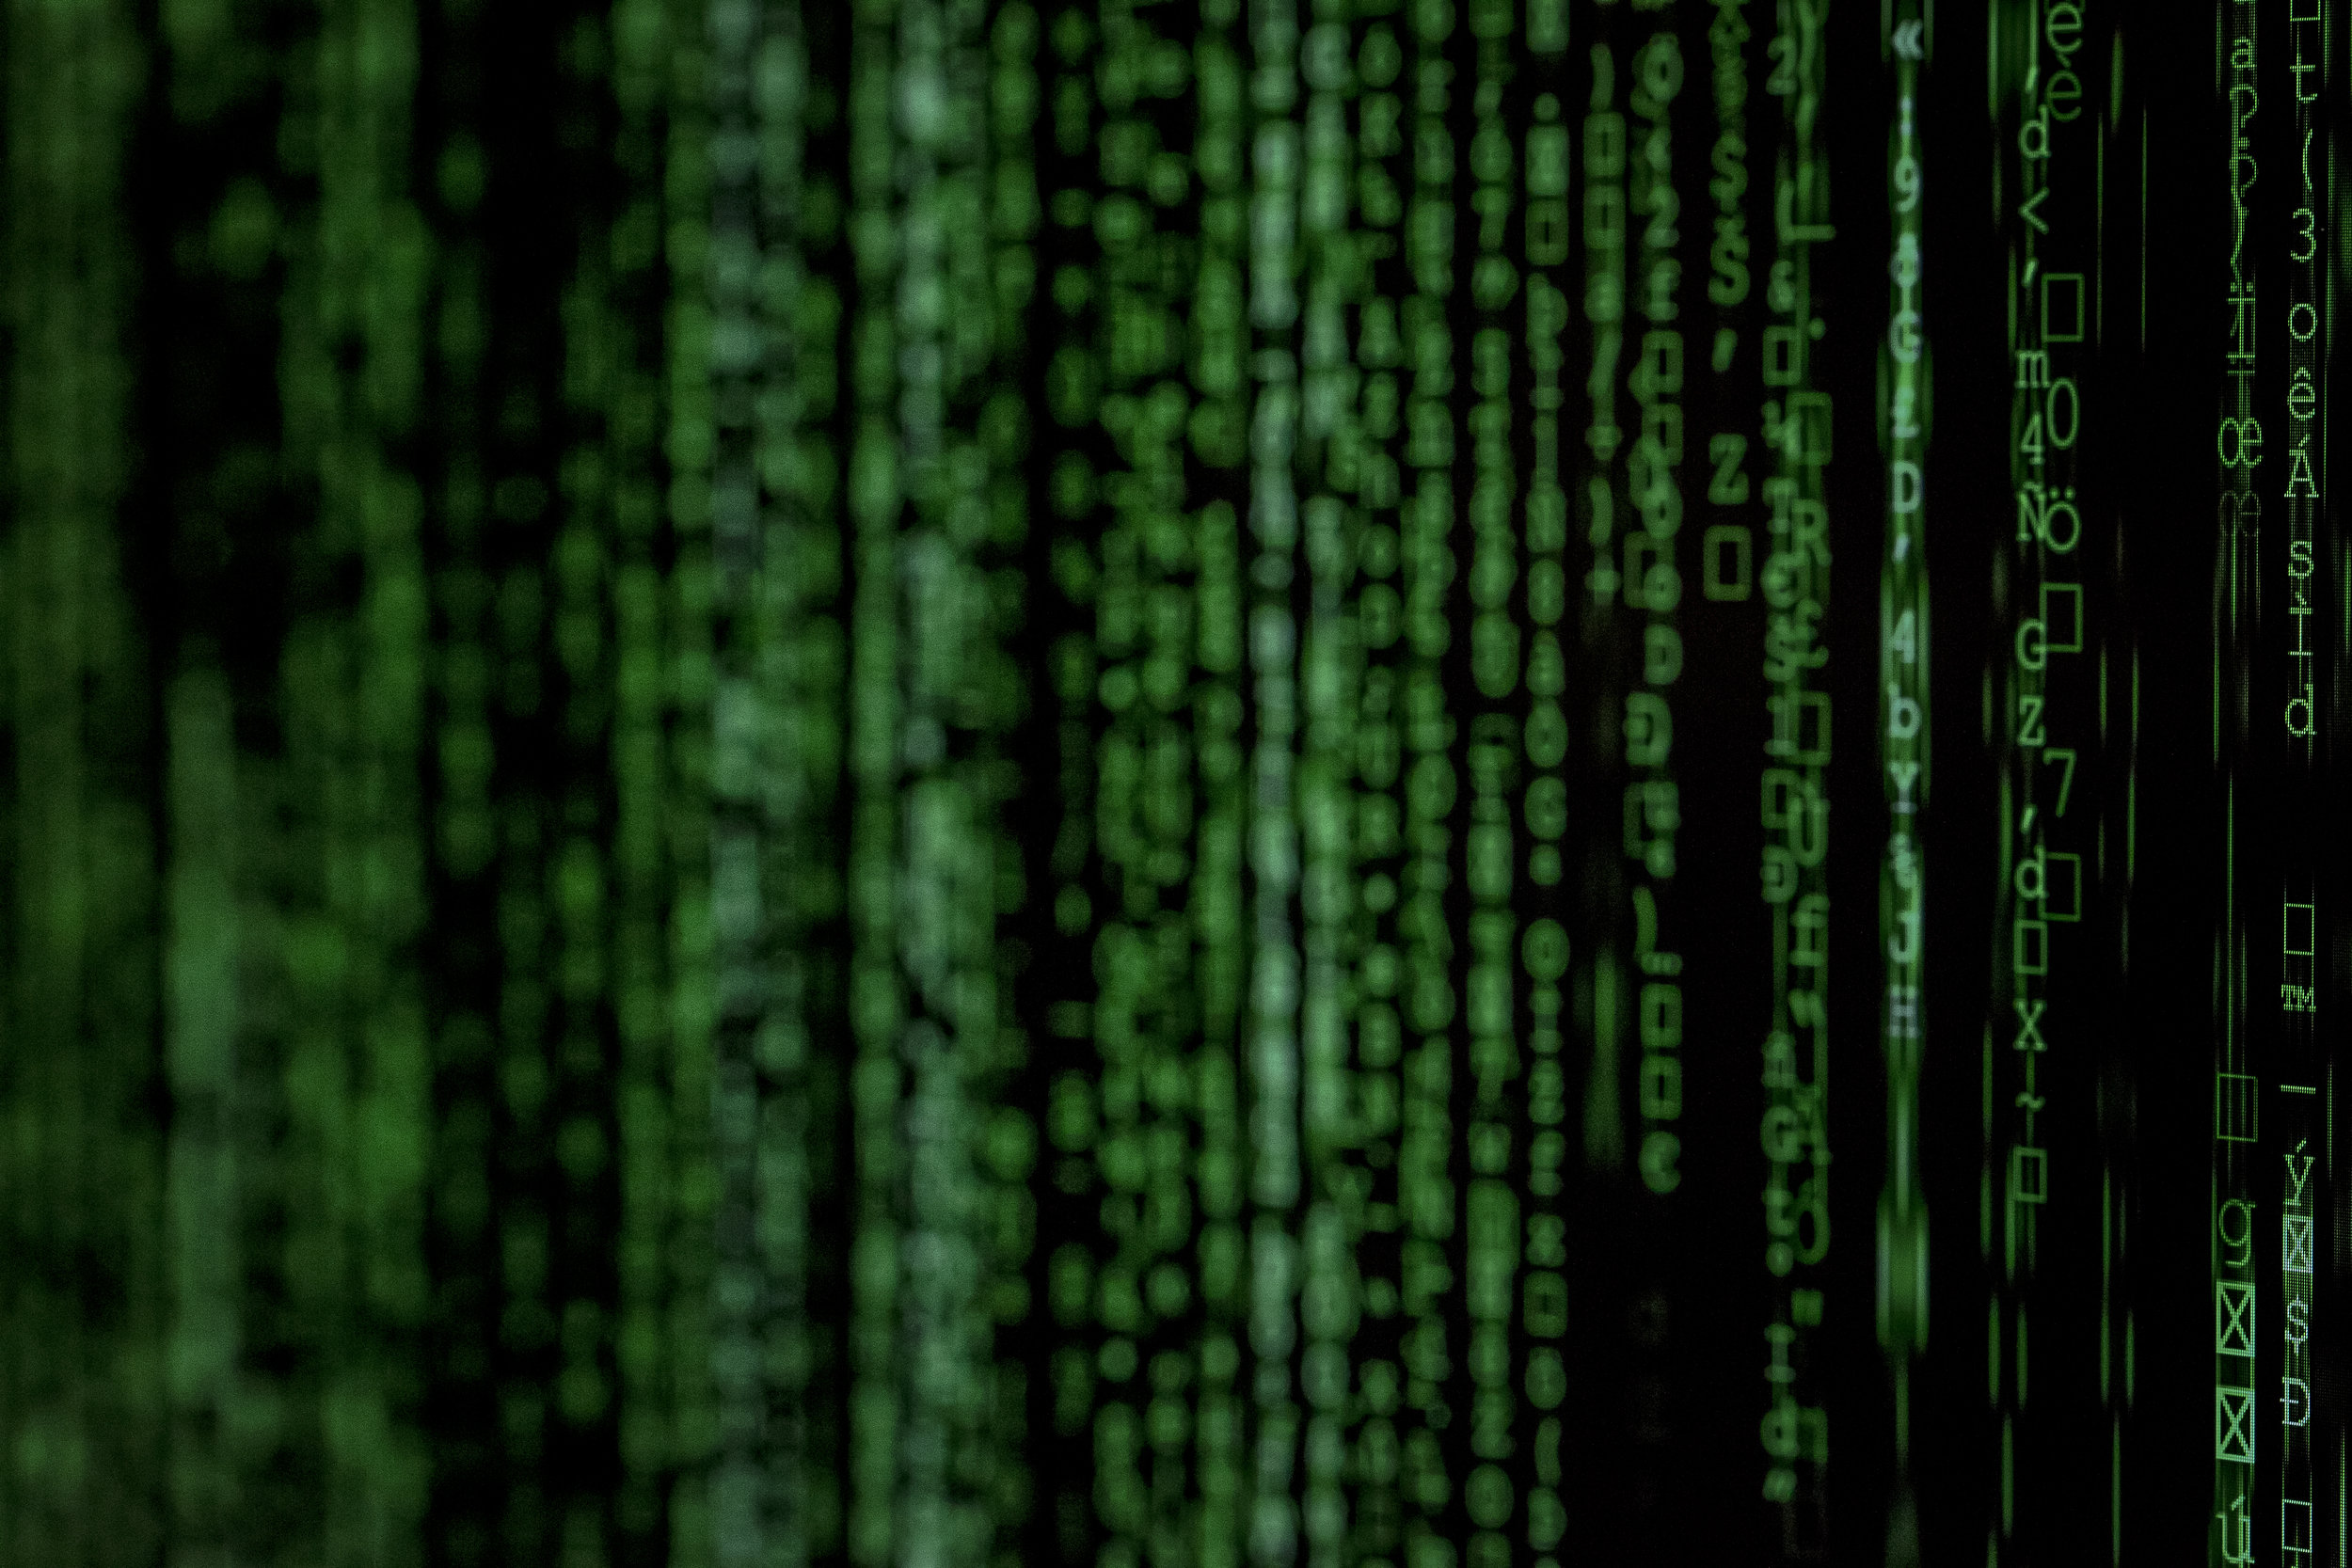 Trying to understand all the internet down to its basic level would be like trying to understand the Matrix, impossible